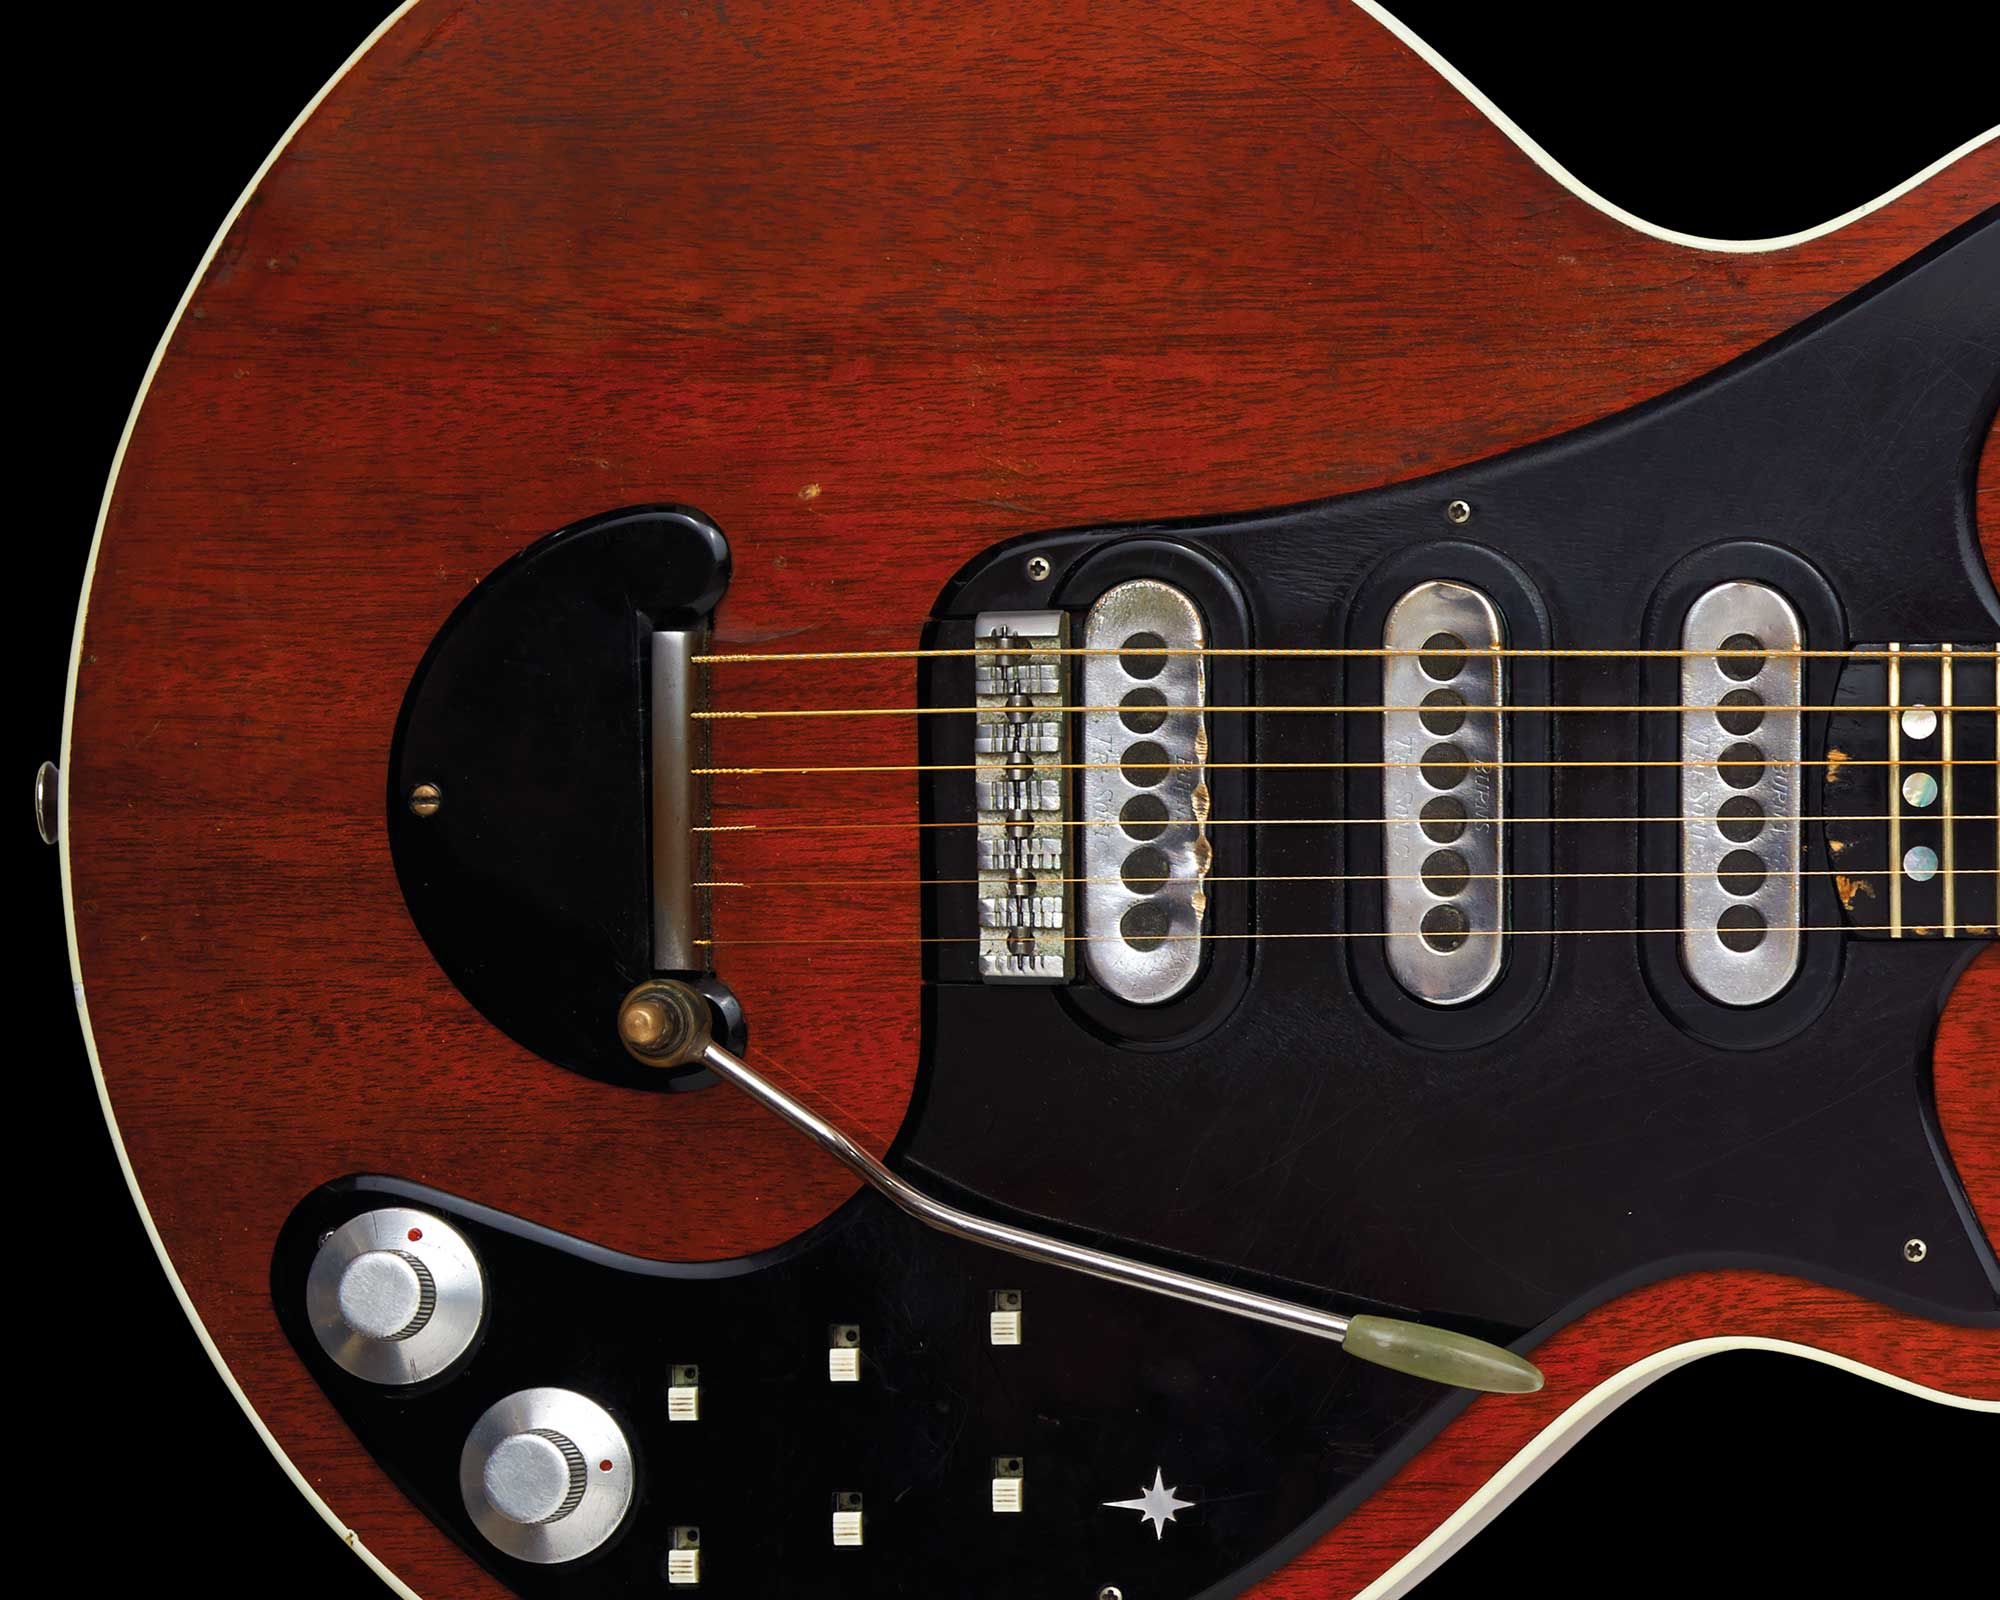 guitar nicknamed red special - HD1366×768